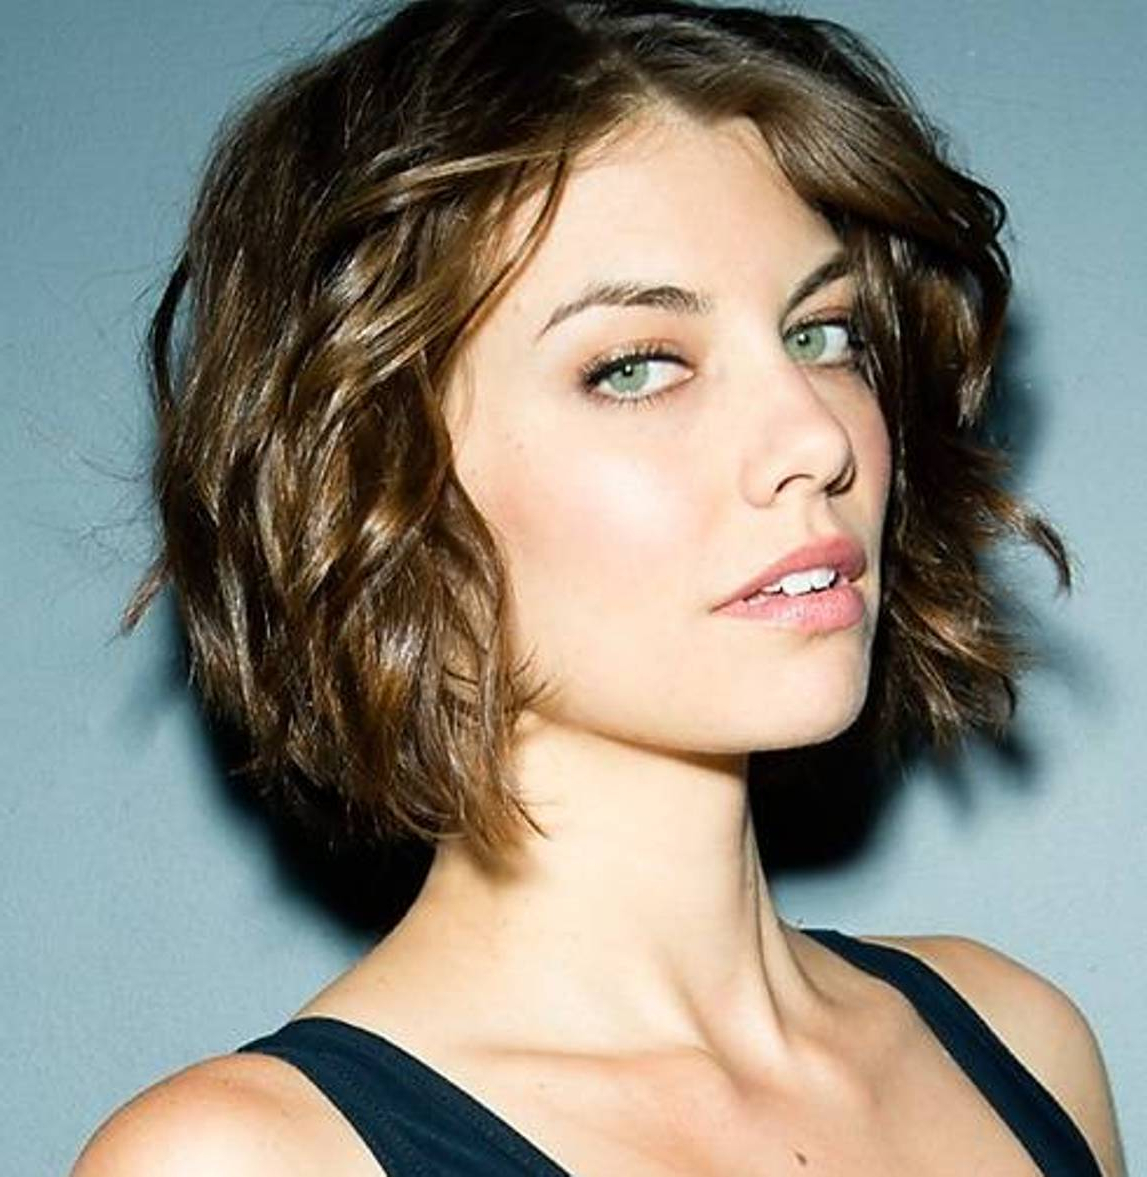 30 Short Wavy Hairstyles For Bouncy Textured Looks Regarding Layered Haircuts For Short Curly Hair (View 5 of 25)